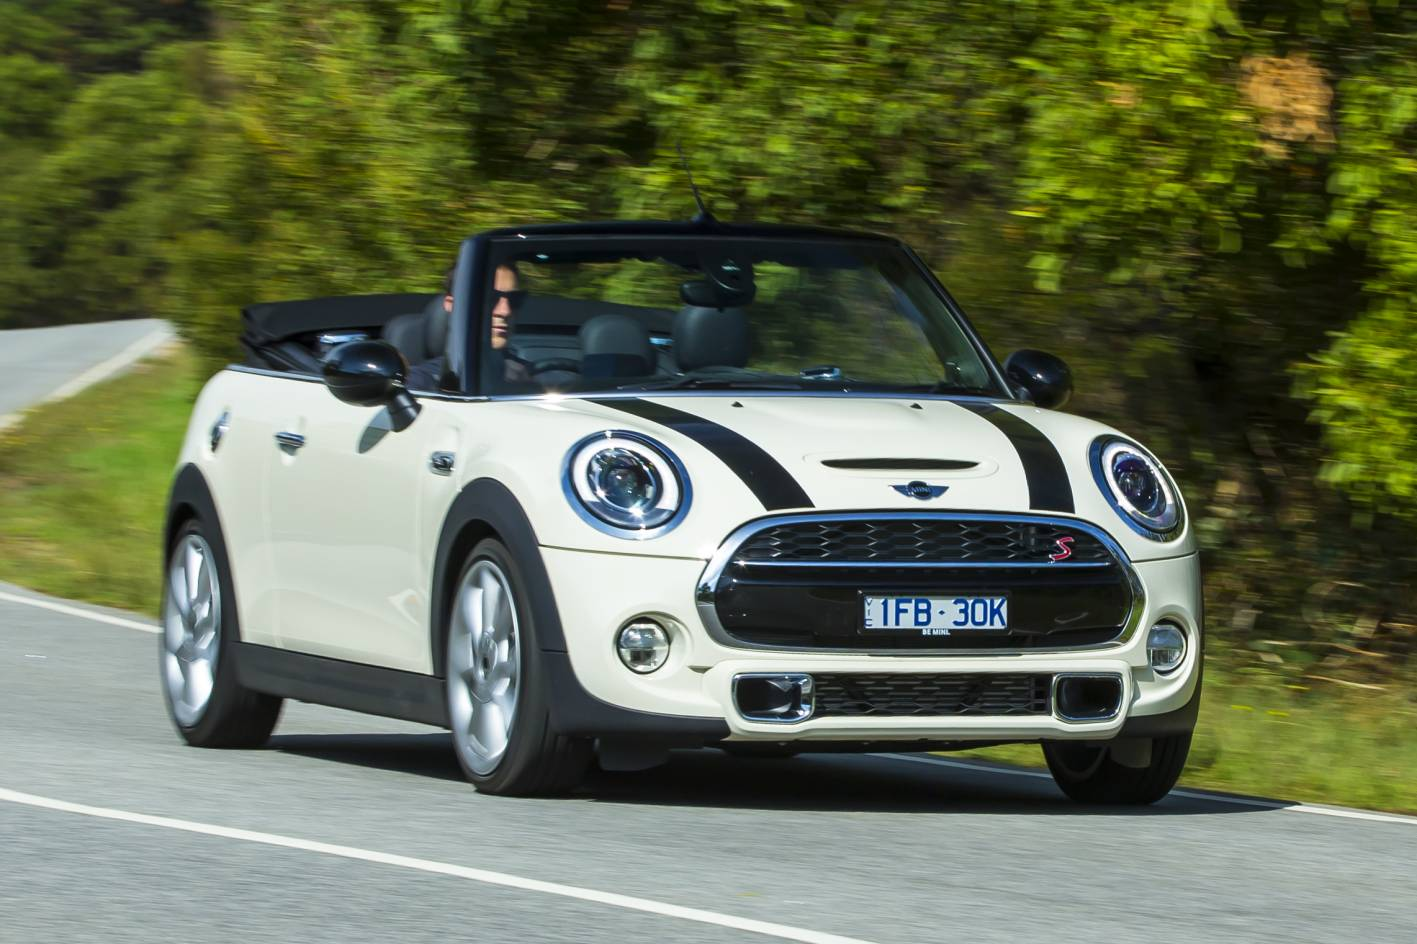 2016 Mini Convertible Review - Photos